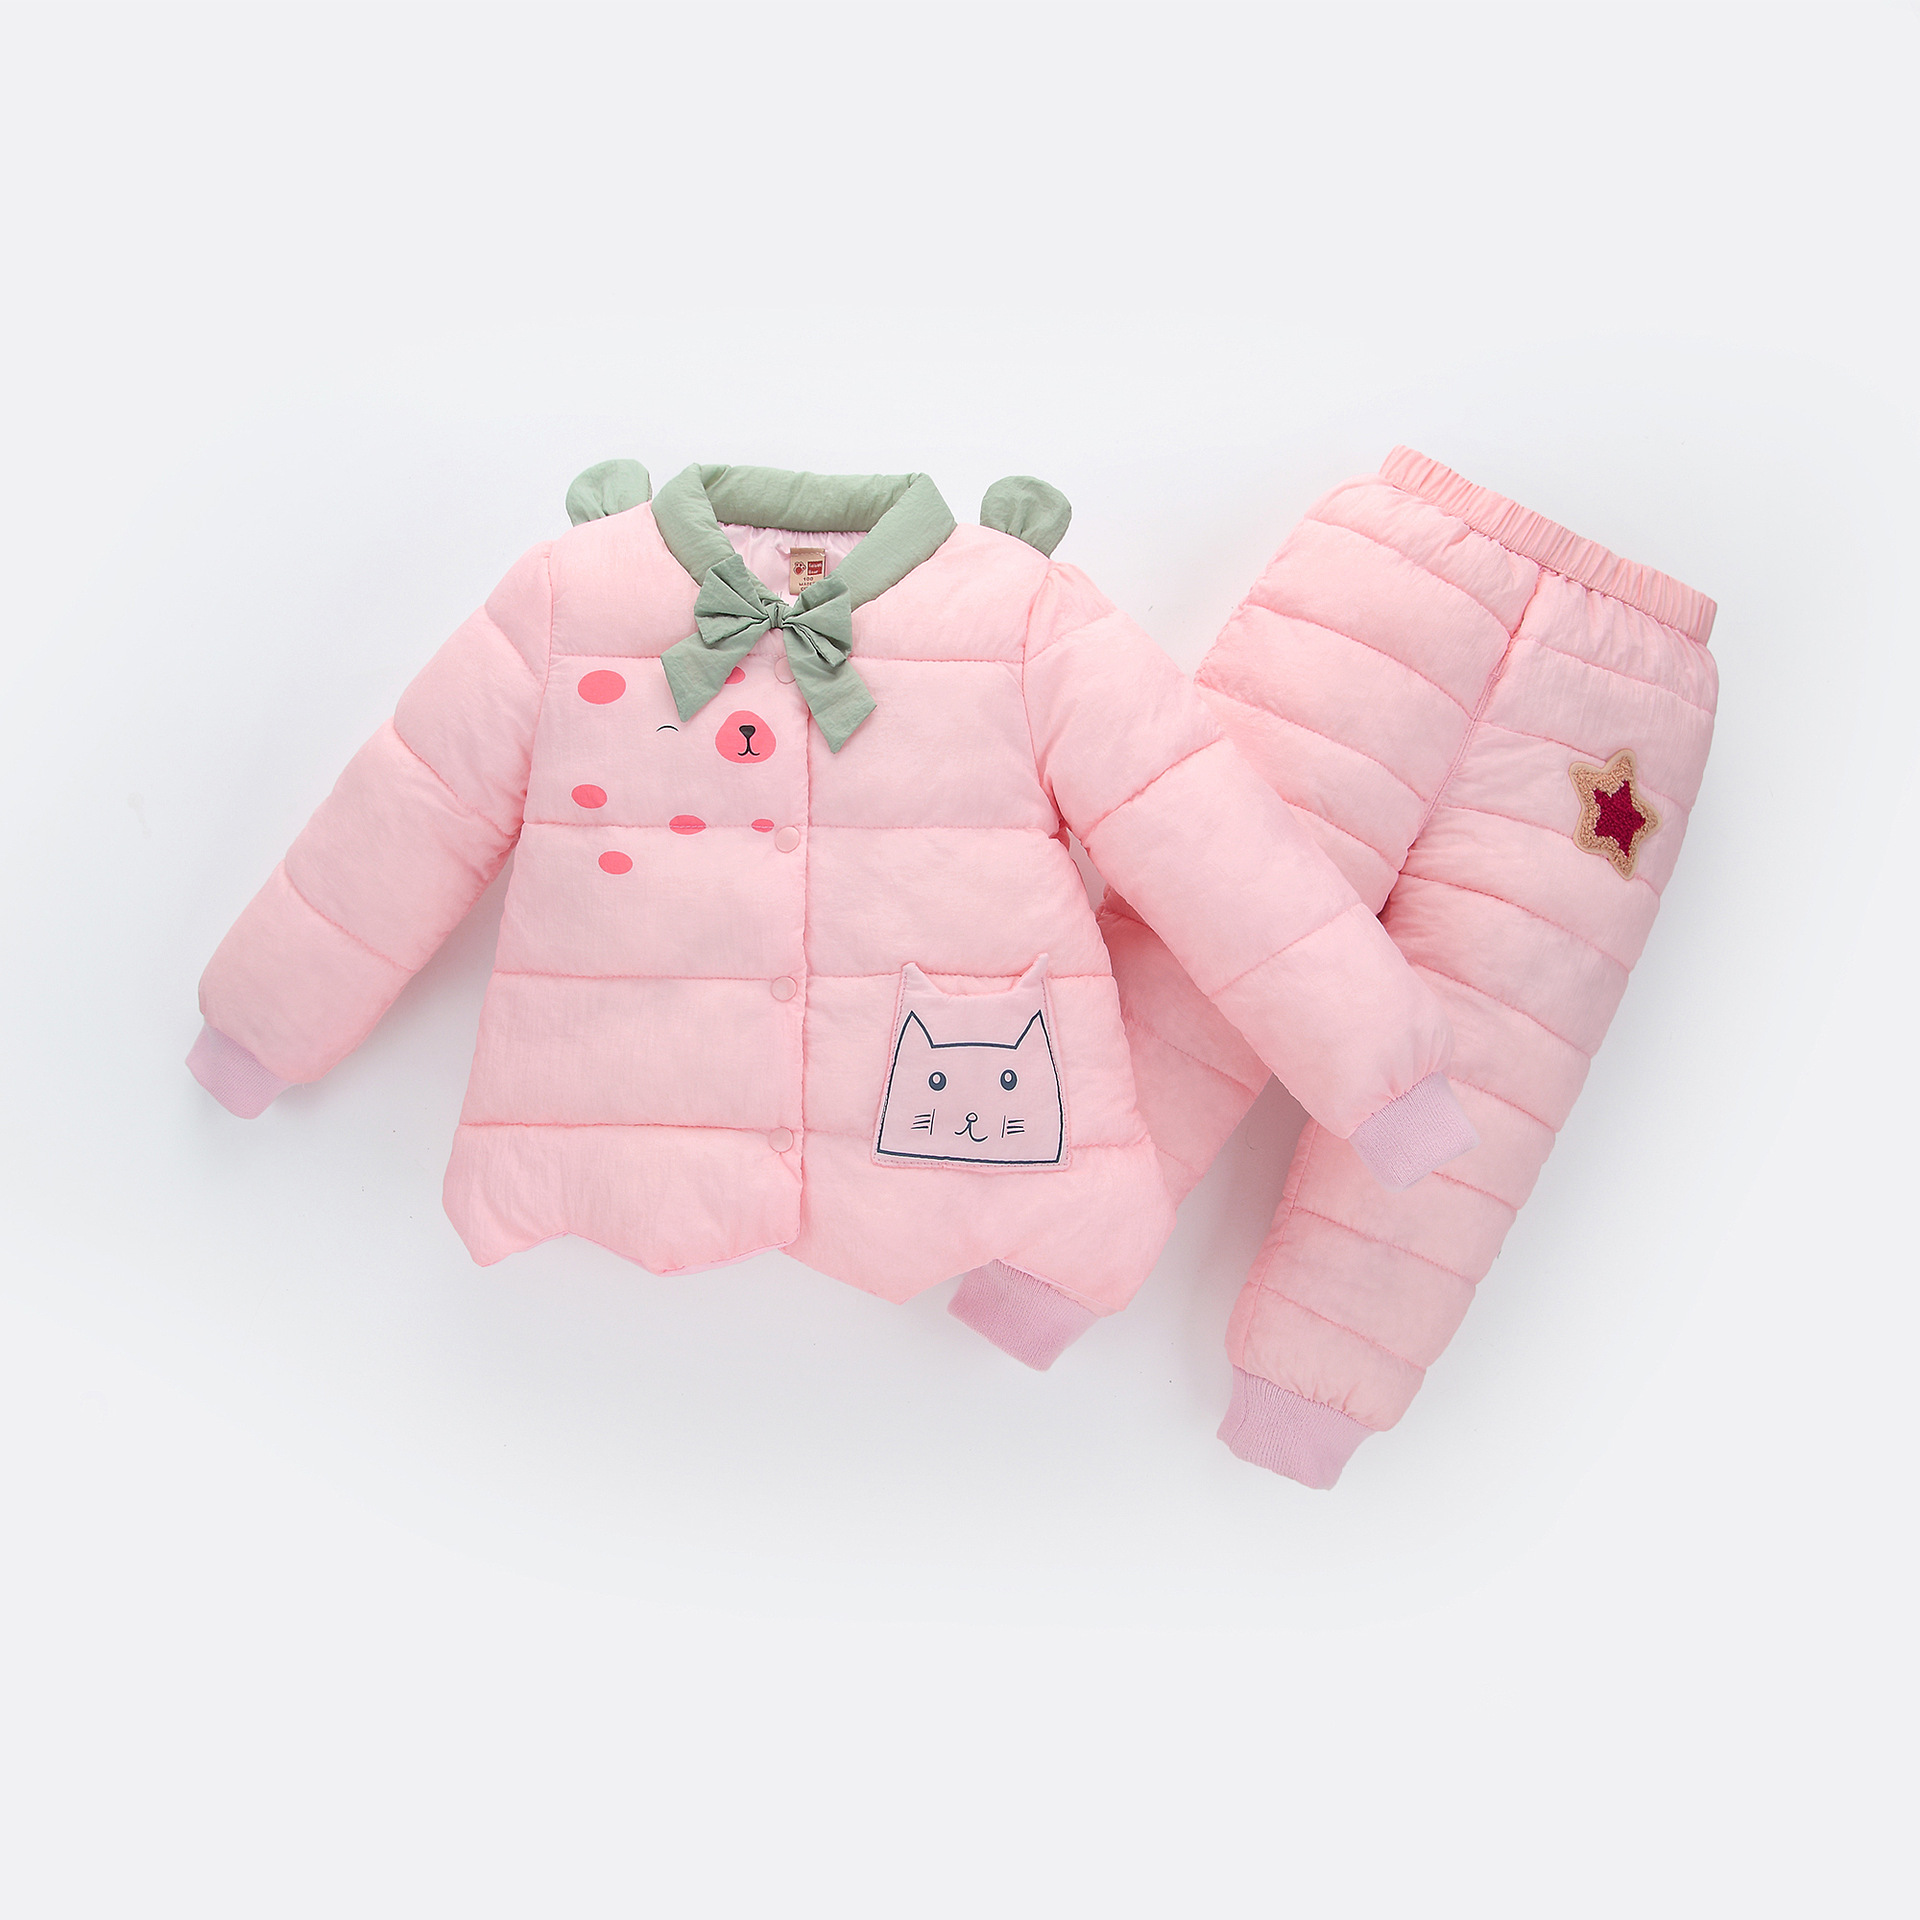 2017 Autumn and winter new sweet cute style children padded suit trousers Keep warm coat  baby girls down cotton two piece/sets brown sugar kitchen new style down home recipes from sweet west oakland